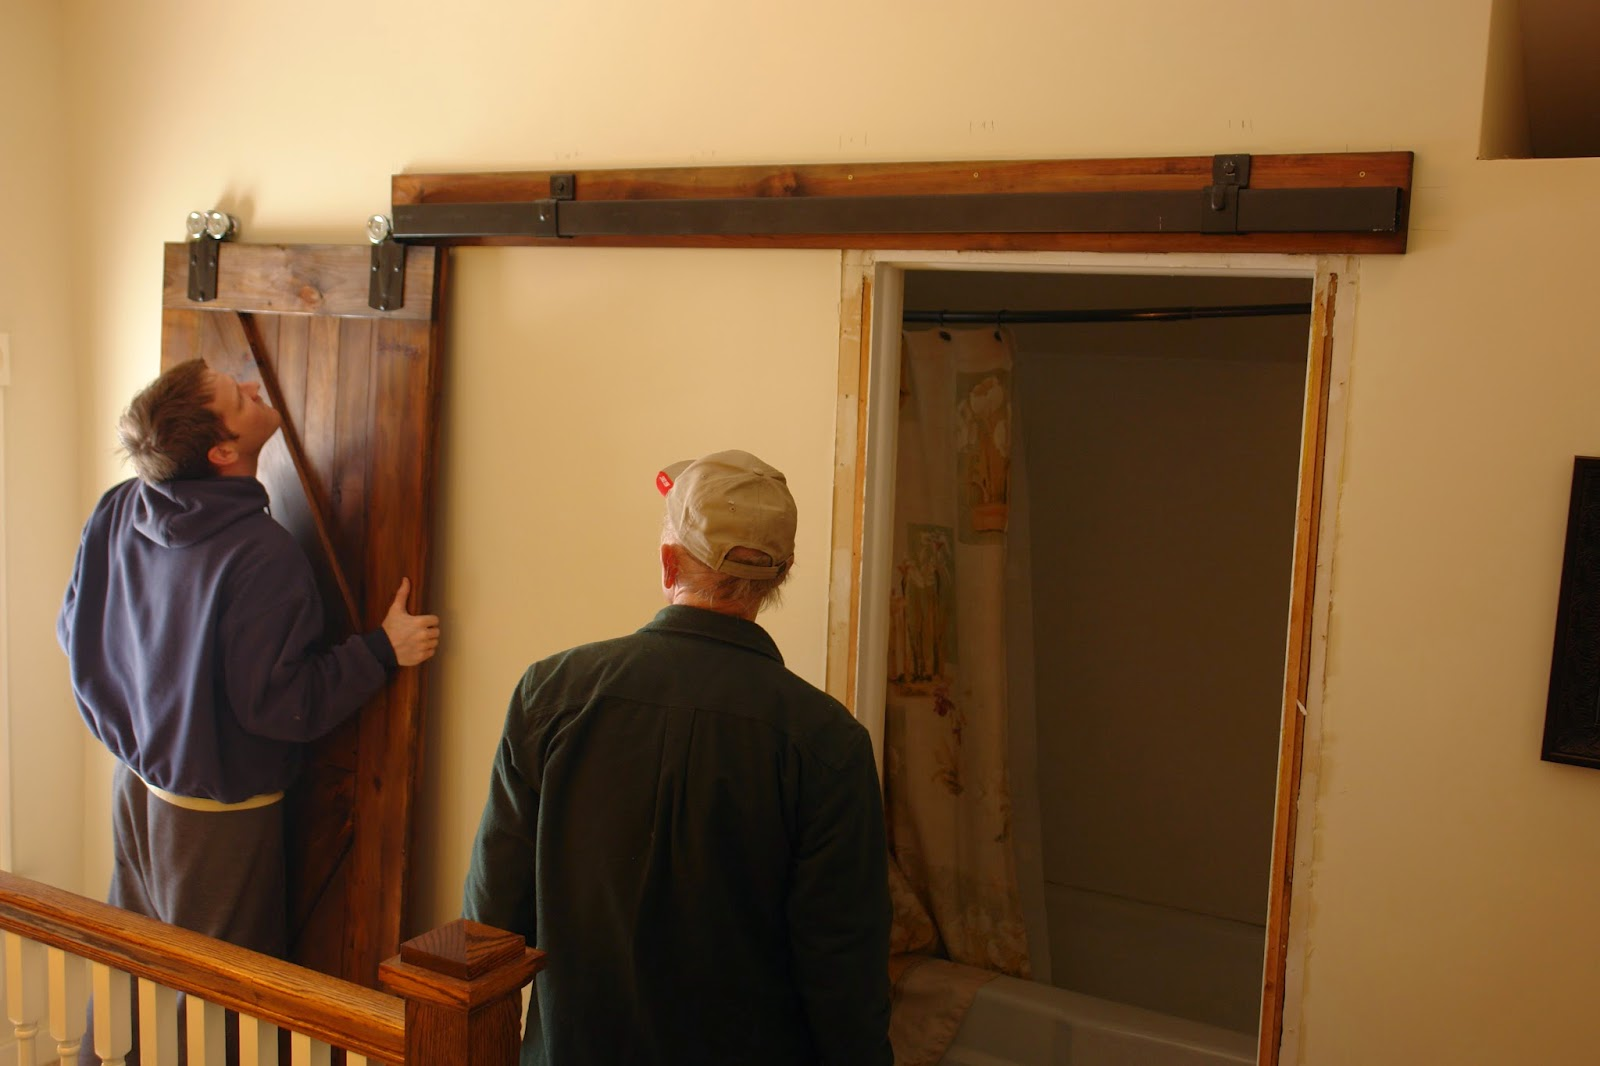 After A Few Adjustments, We Have A Functioning Sliding Barn Door For Our  Bathroom And We Love It!